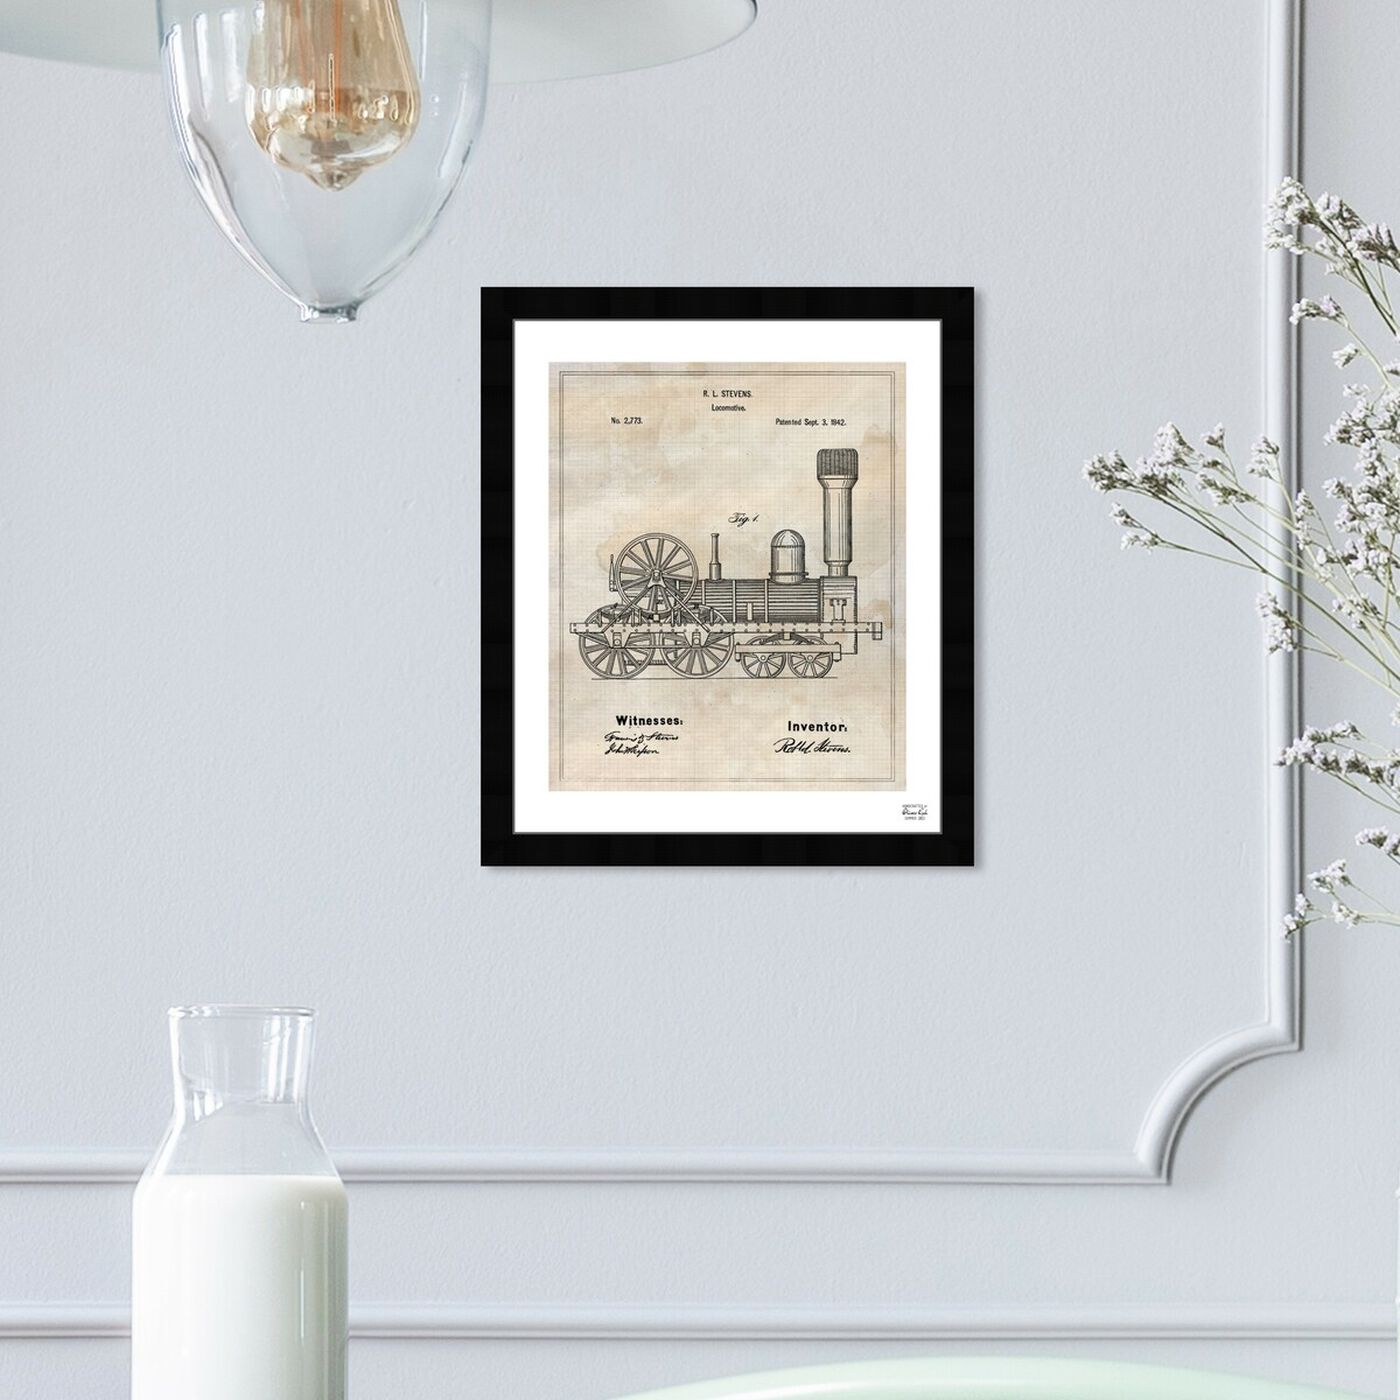 Hanging view of Locomotive 1842 featuring transportation and trains art.